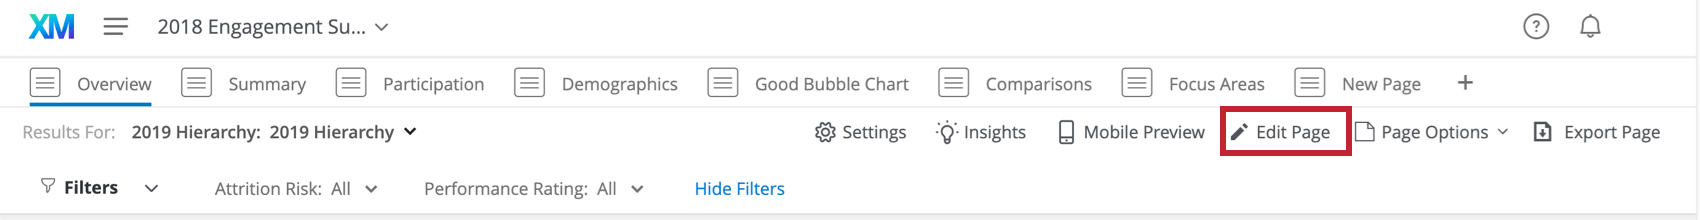 Edit Page button on the top-right